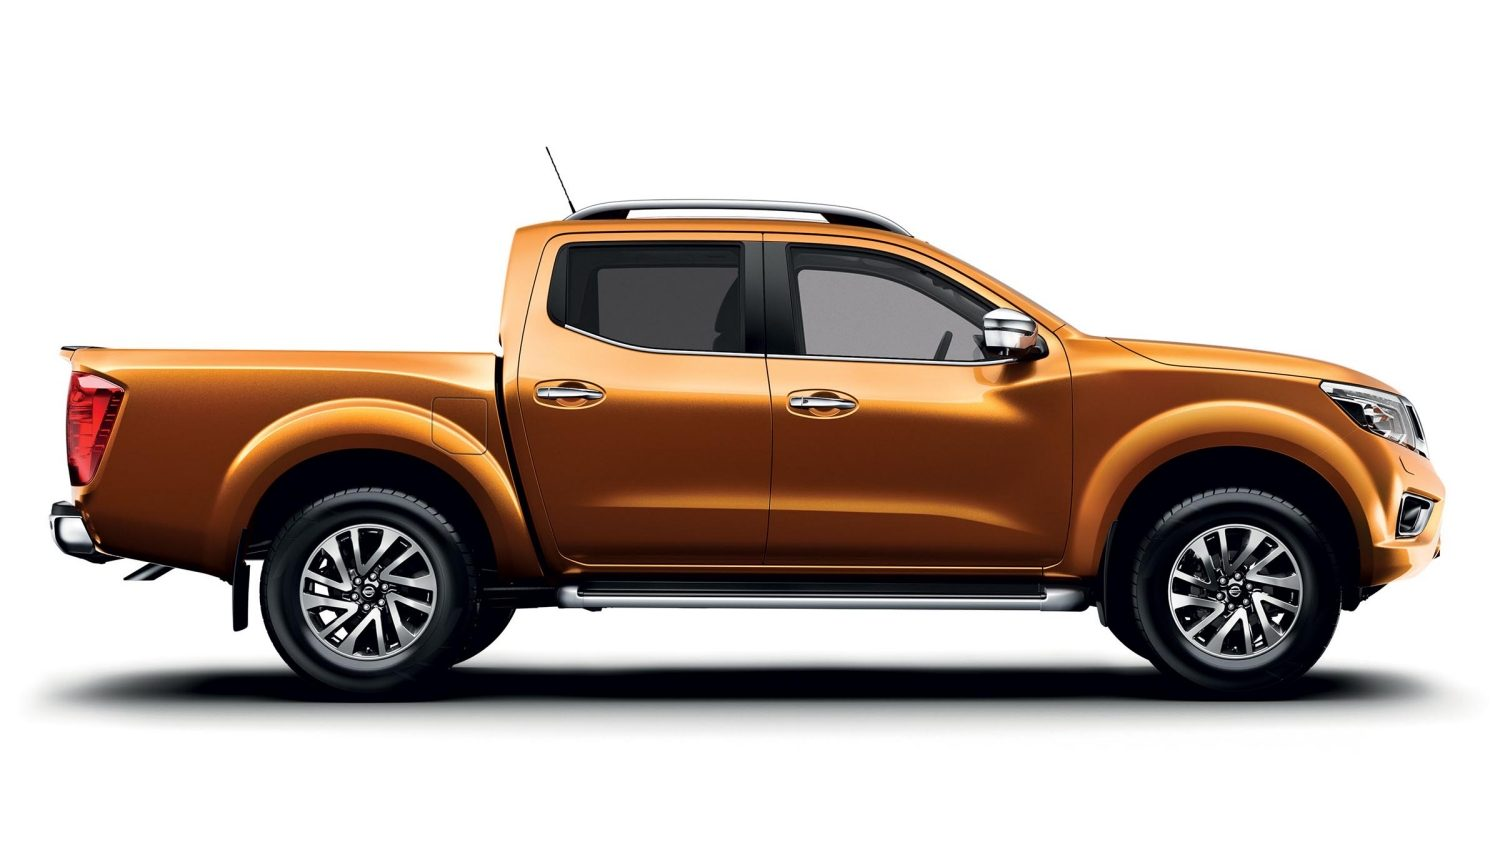 design all new navara pick up truck 4x4 nissan. Black Bedroom Furniture Sets. Home Design Ideas